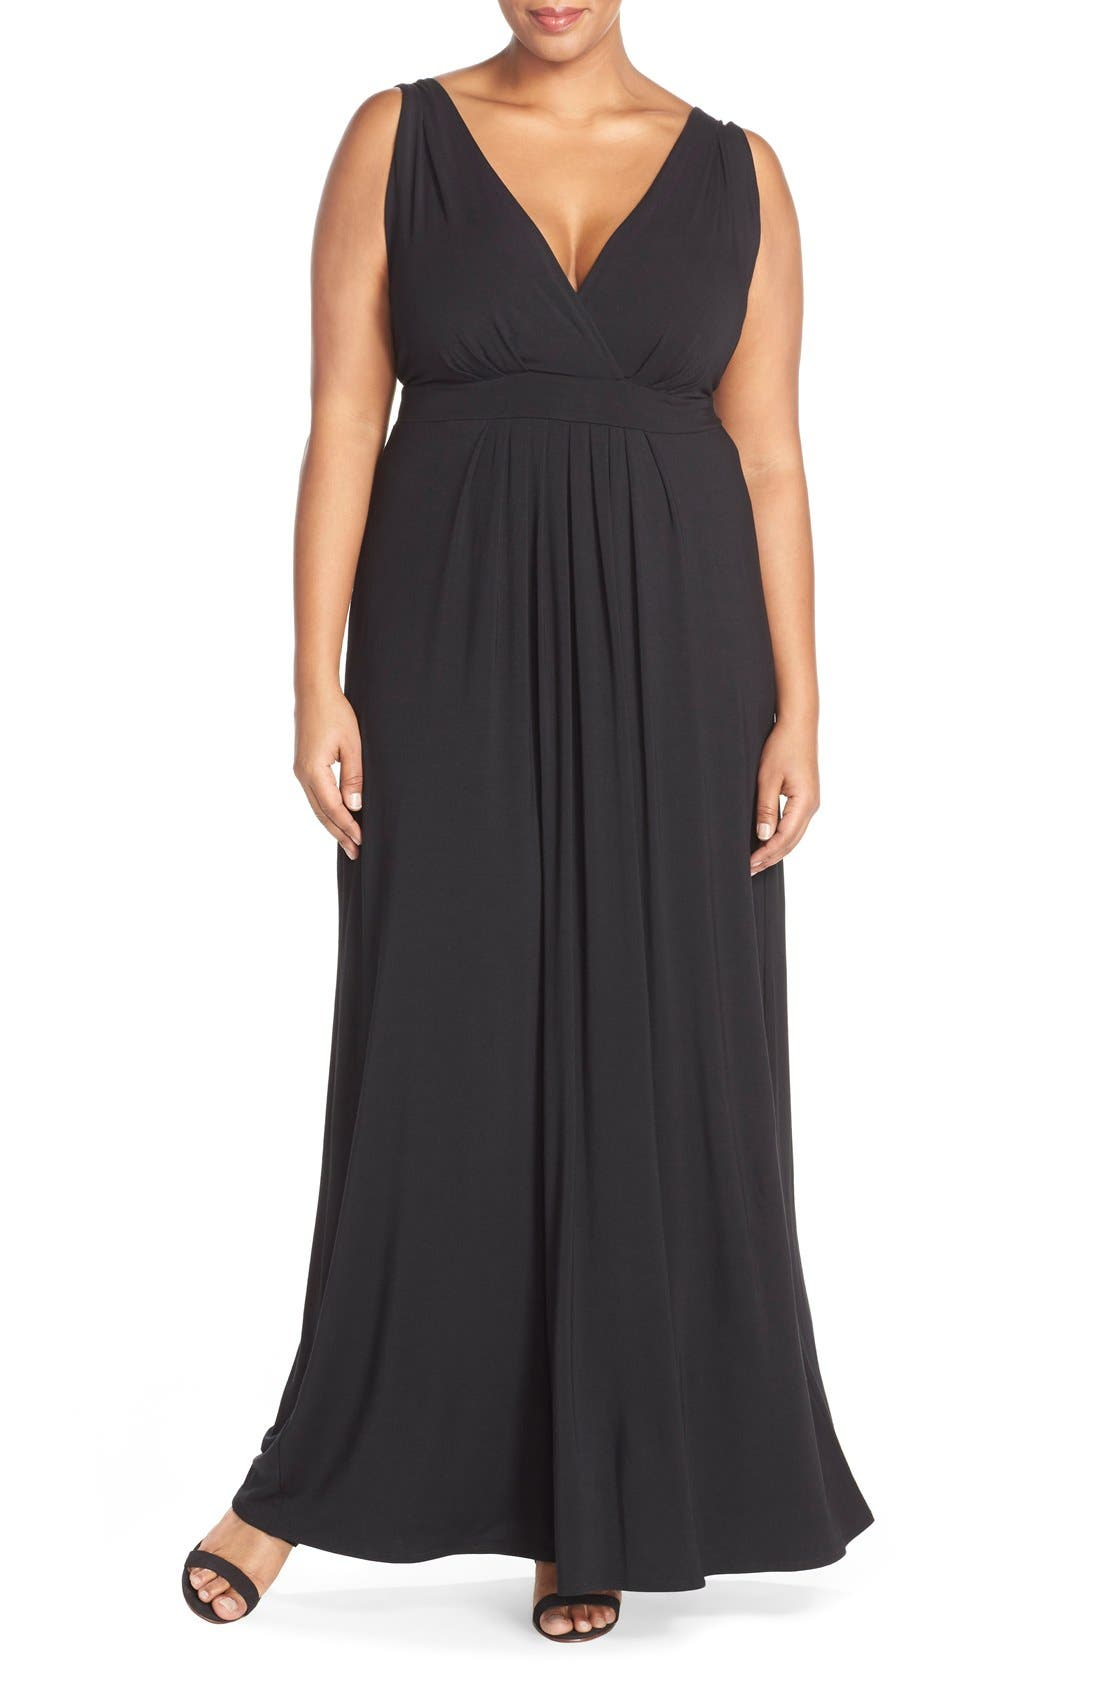 Chloe Empire Waist Maxi Dress,                         Main,                         color, 001